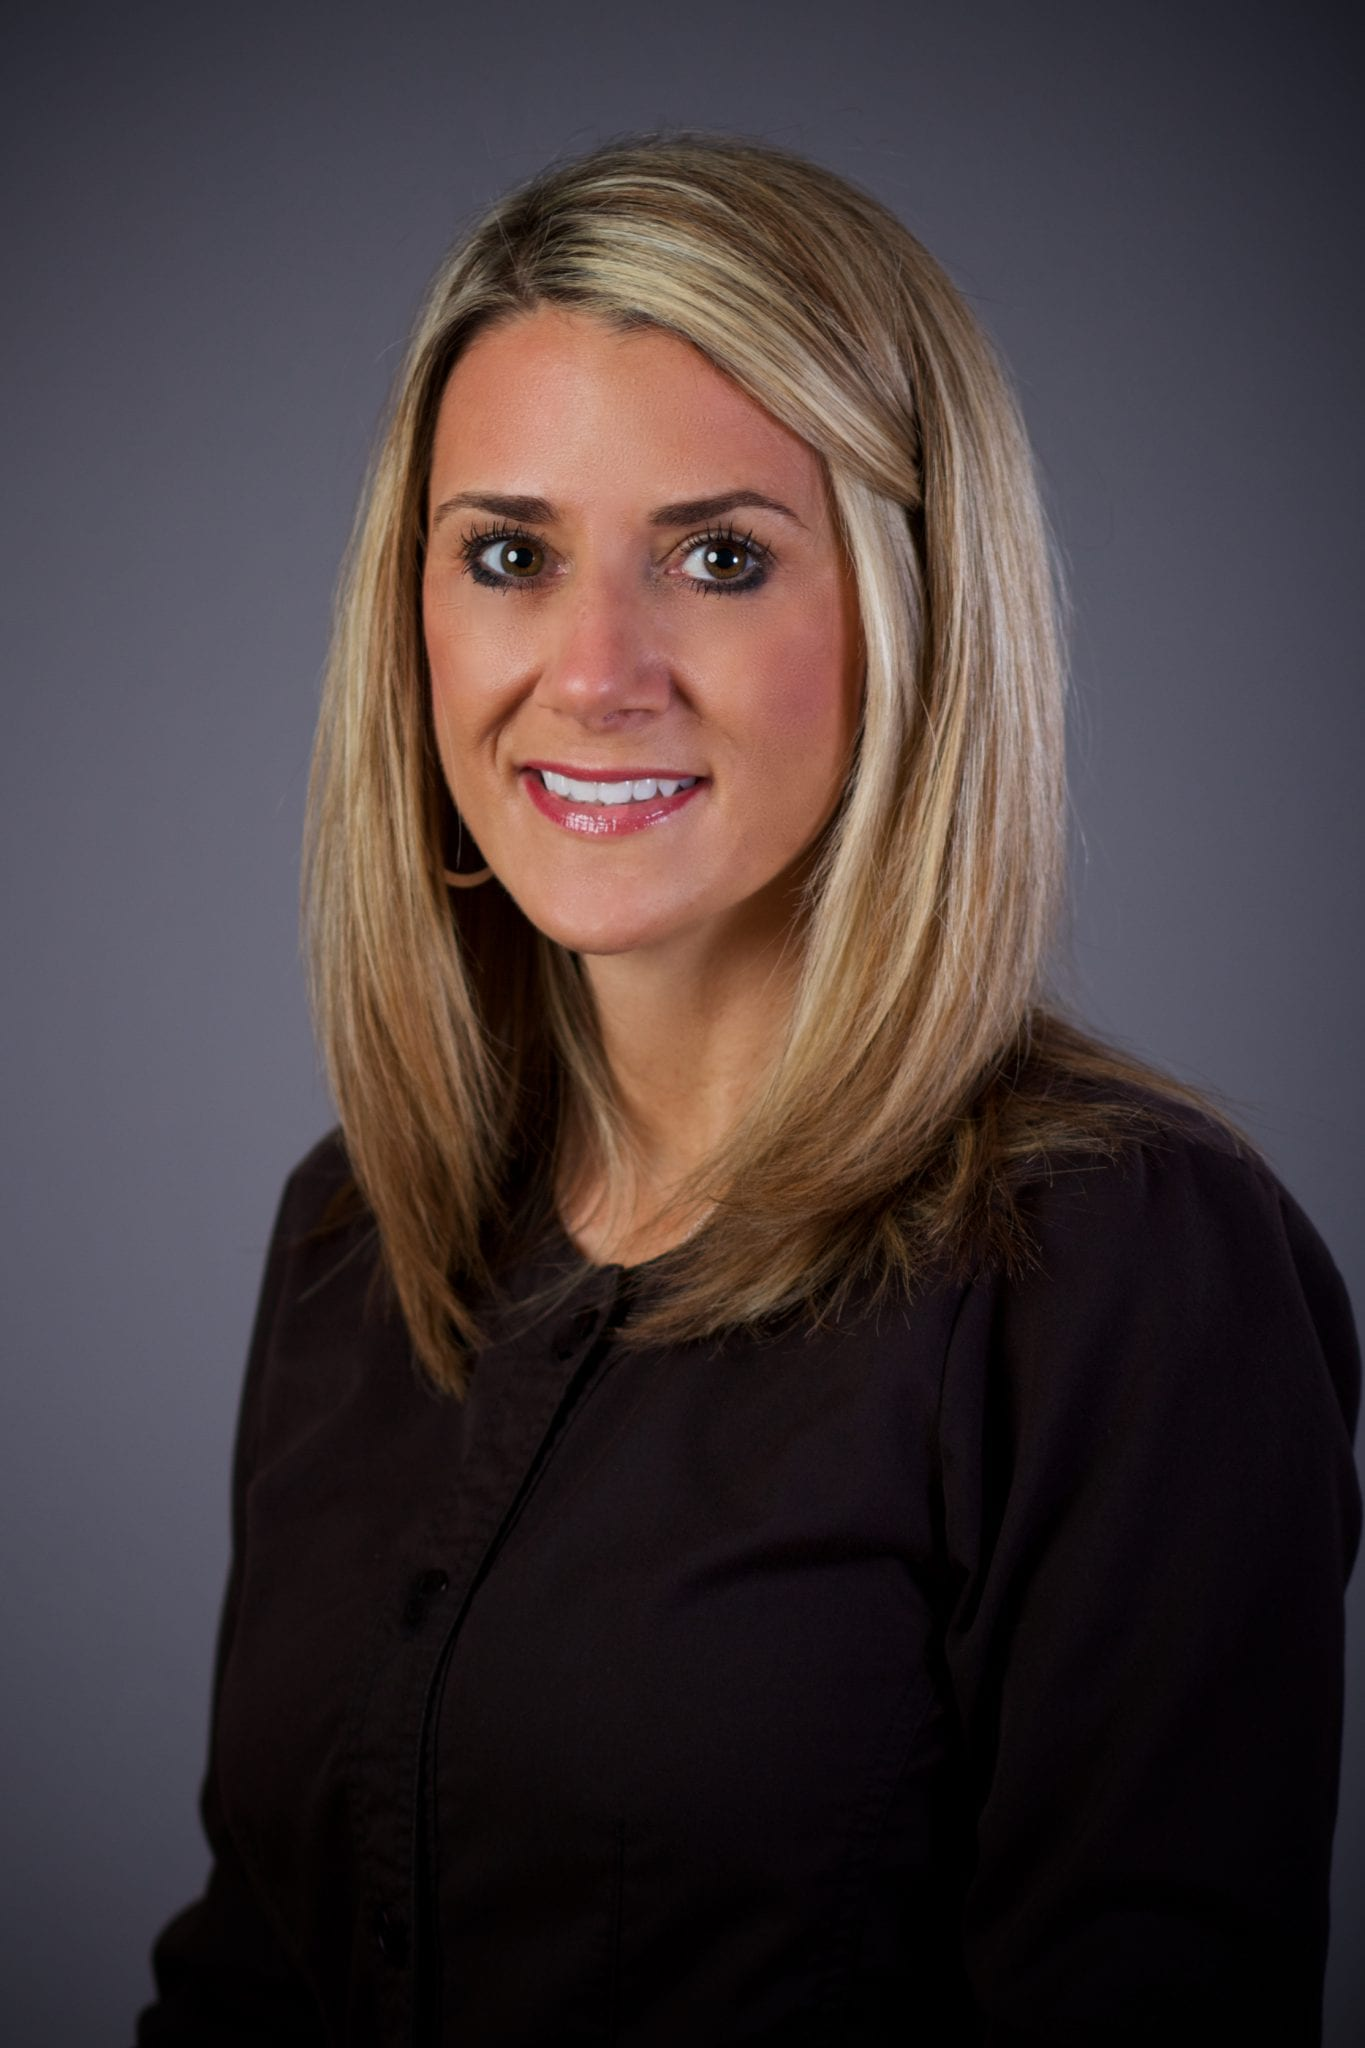 Lisa who is a Dental Assistant at Birdwell and Guffey Family Dentistry in South Knoxville